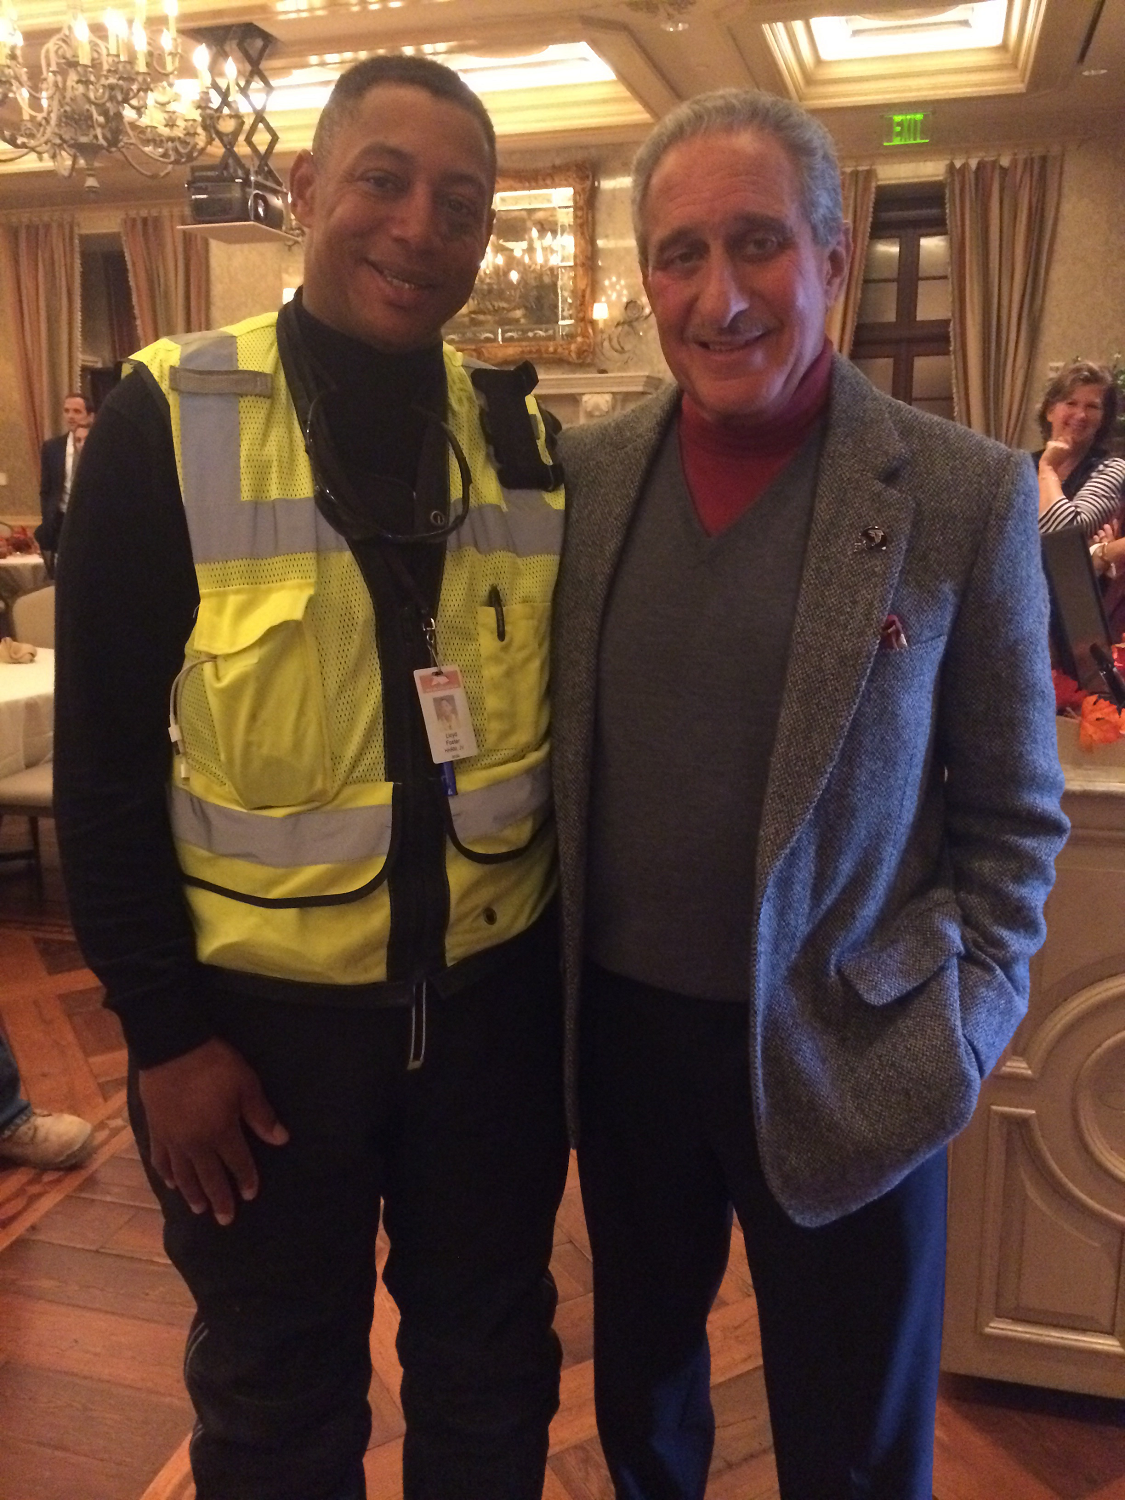 Lloyd with Falcons Owner Arthur Blank at the Arthur M. Blank Foundation Thanksgiving Luncheon Nov. 18, 2014. Lloyd was asked to share his story as the keynote speaker.